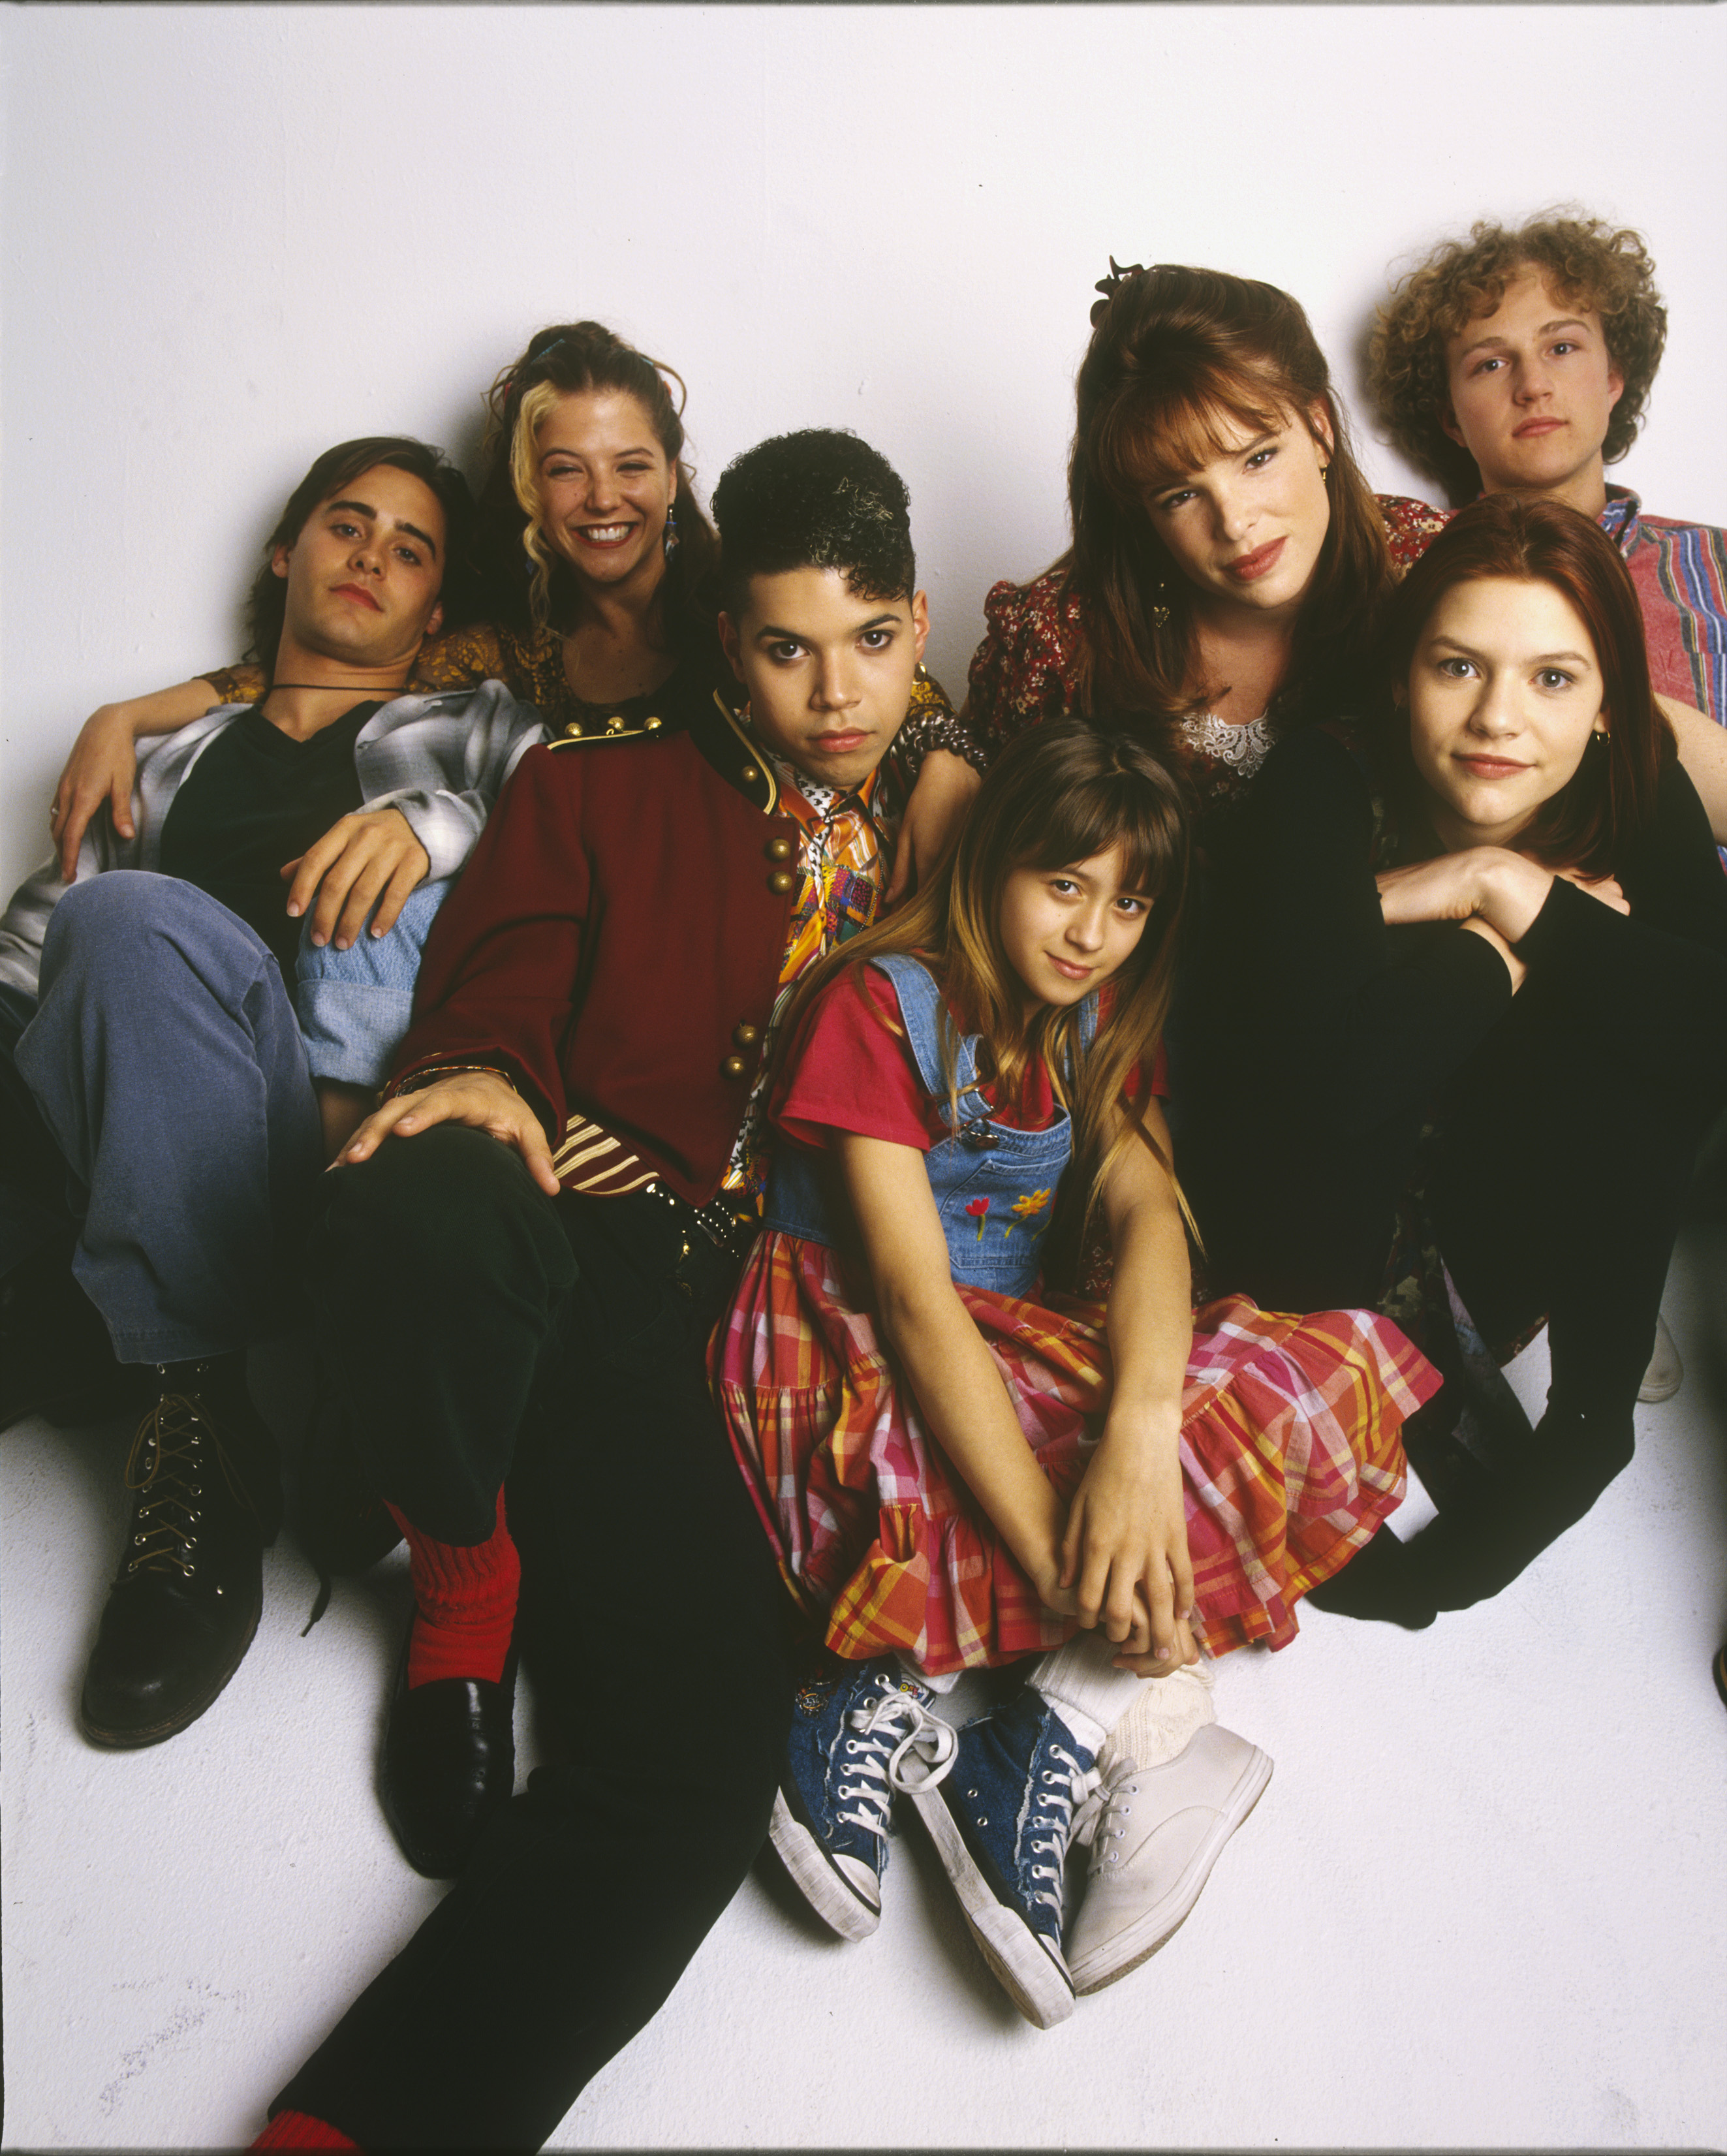 UNITED STATES - AUGUST 25:  MY SO-CALLED LIFE - gallery - 8/25/94, Claire Danes (second from right) played Angela Chase, a 15-year-old who wanted to break out of the mold as a strait-laced teen-ager and straight-A student. Pictured, left to right: Jason Leto (Jordan Catalano), A.J. Langer (Rayanne Graff), Wilson Cruz (Rickie Vasquez), Lisa Wilhoit (Danielle Chase), Devon Odessa (Sharon Cherski), Claire Danes (Angela Chase), Devon Gummersall (Brian Krakow),  (Photo by Mark Seliger/ABC via Getty Images)